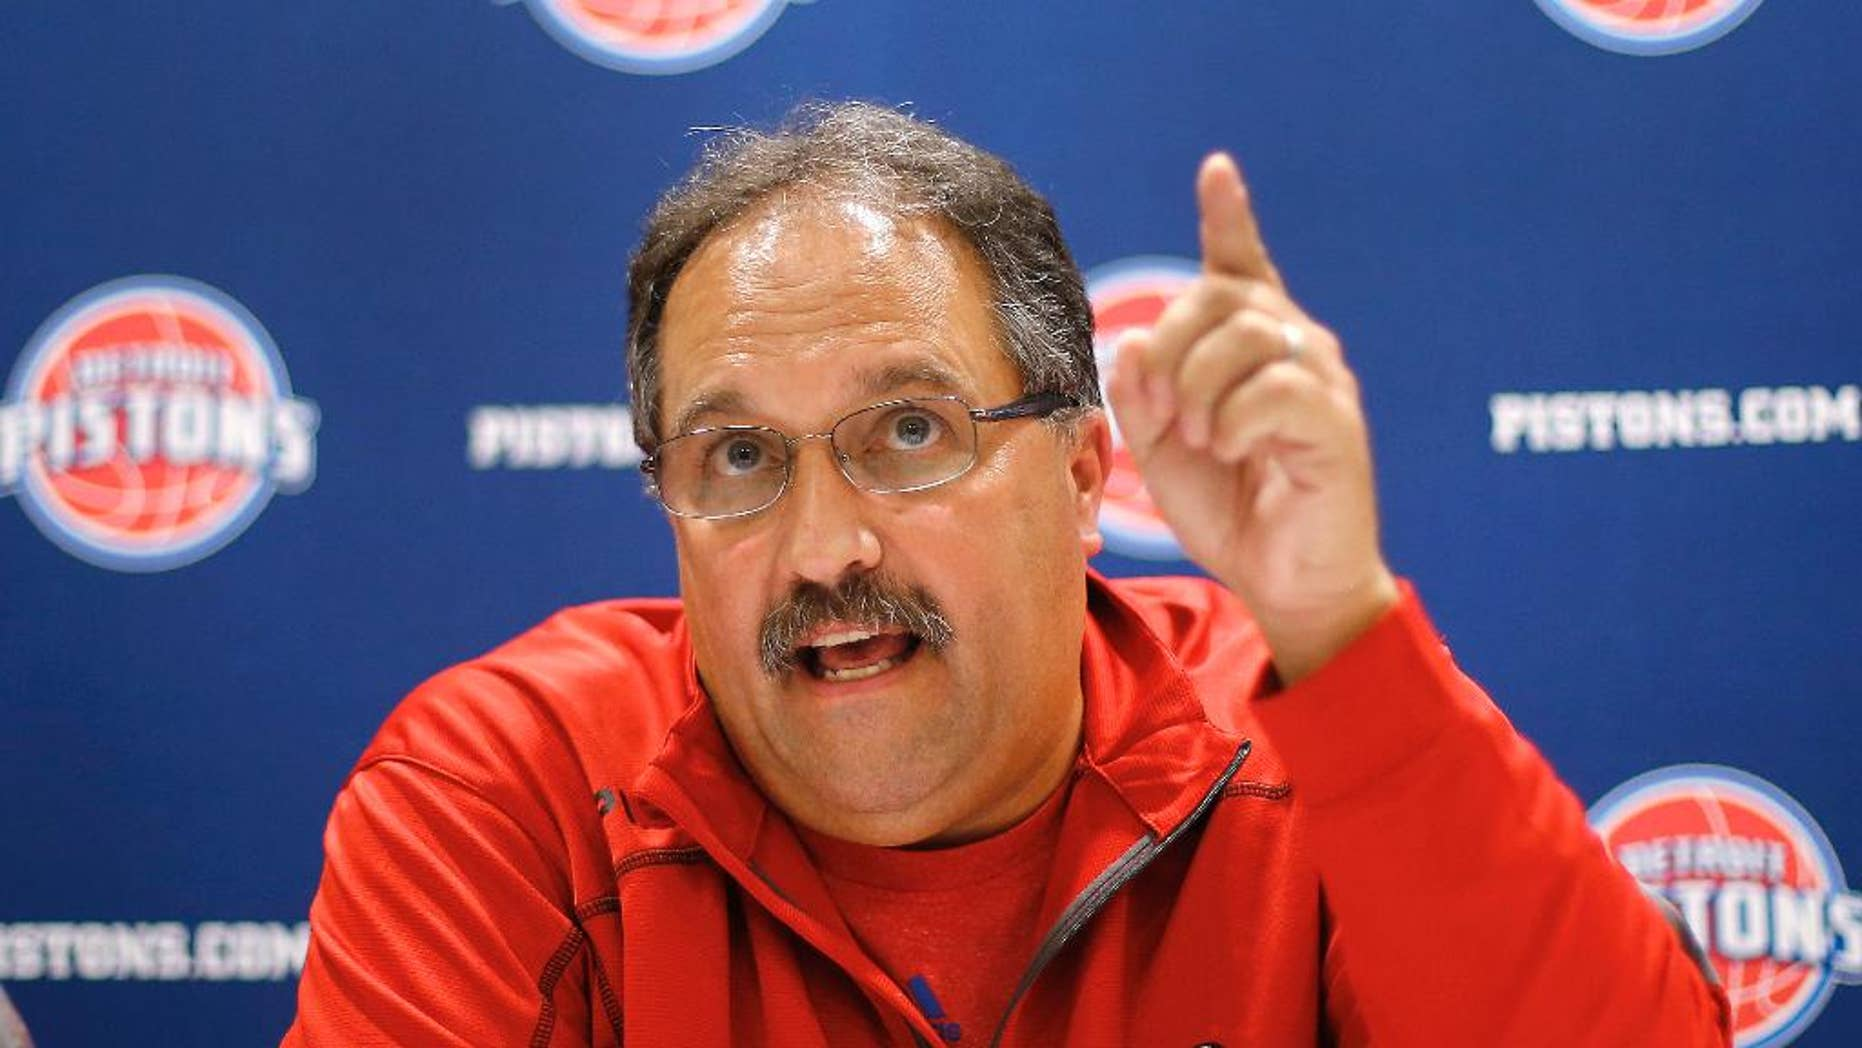 Stan Van Gundy, Detroit Pistons head coach and president of basketball operations, speaks about the NBA basketball draft during a news conference Tuesday, June 24, 2014, in Auburn Hills, Mich. Van Gundy has a plan to turn around the Pistons and it probably will not include this year's draft because the once-proud franchise does not have a first-round pick. (AP Photo/Paul Sancya)